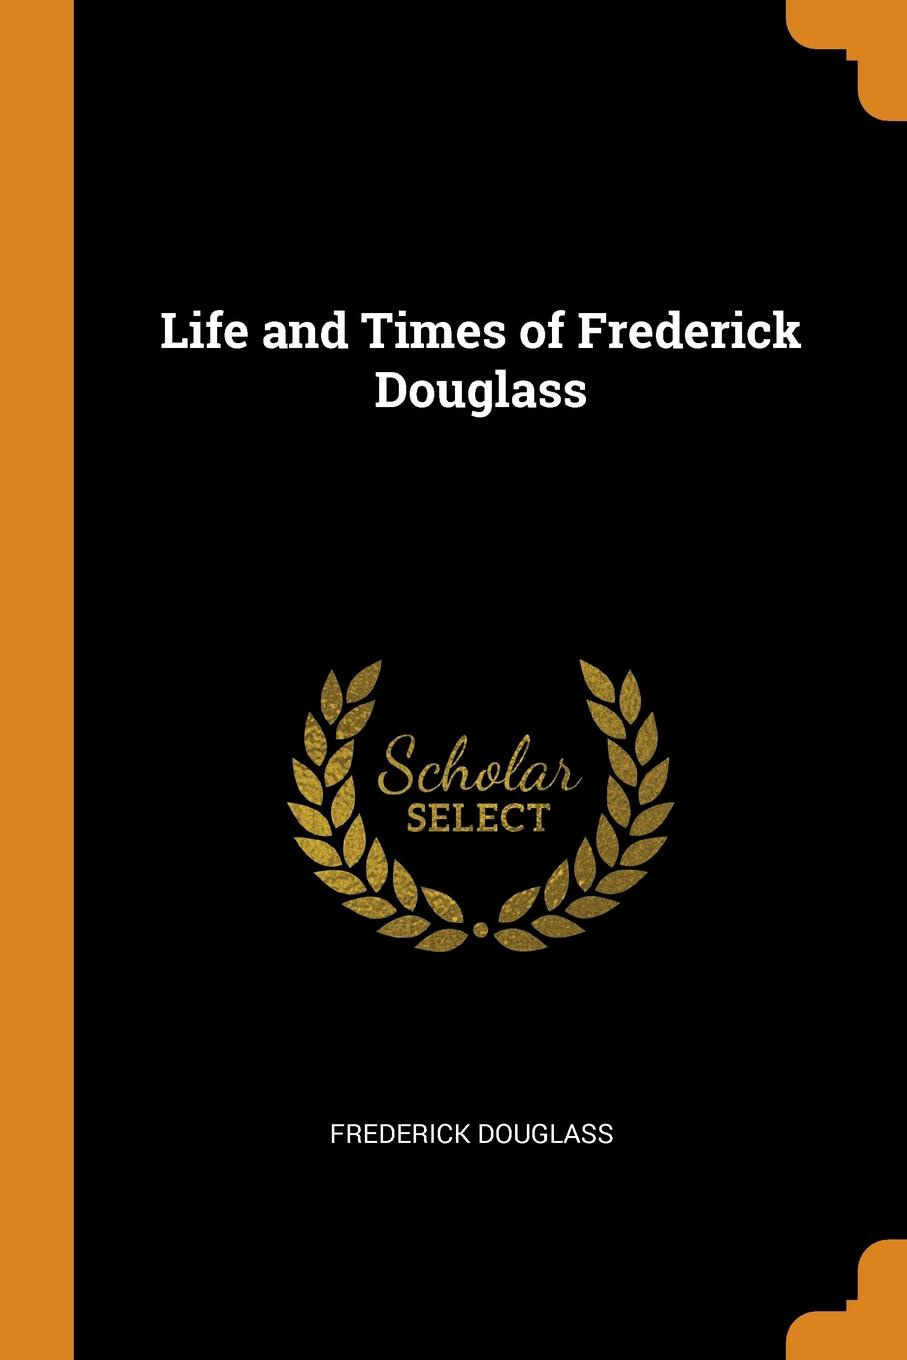 Frederick Douglass Life and Times of Frederick Douglass life and times of frederick douglass